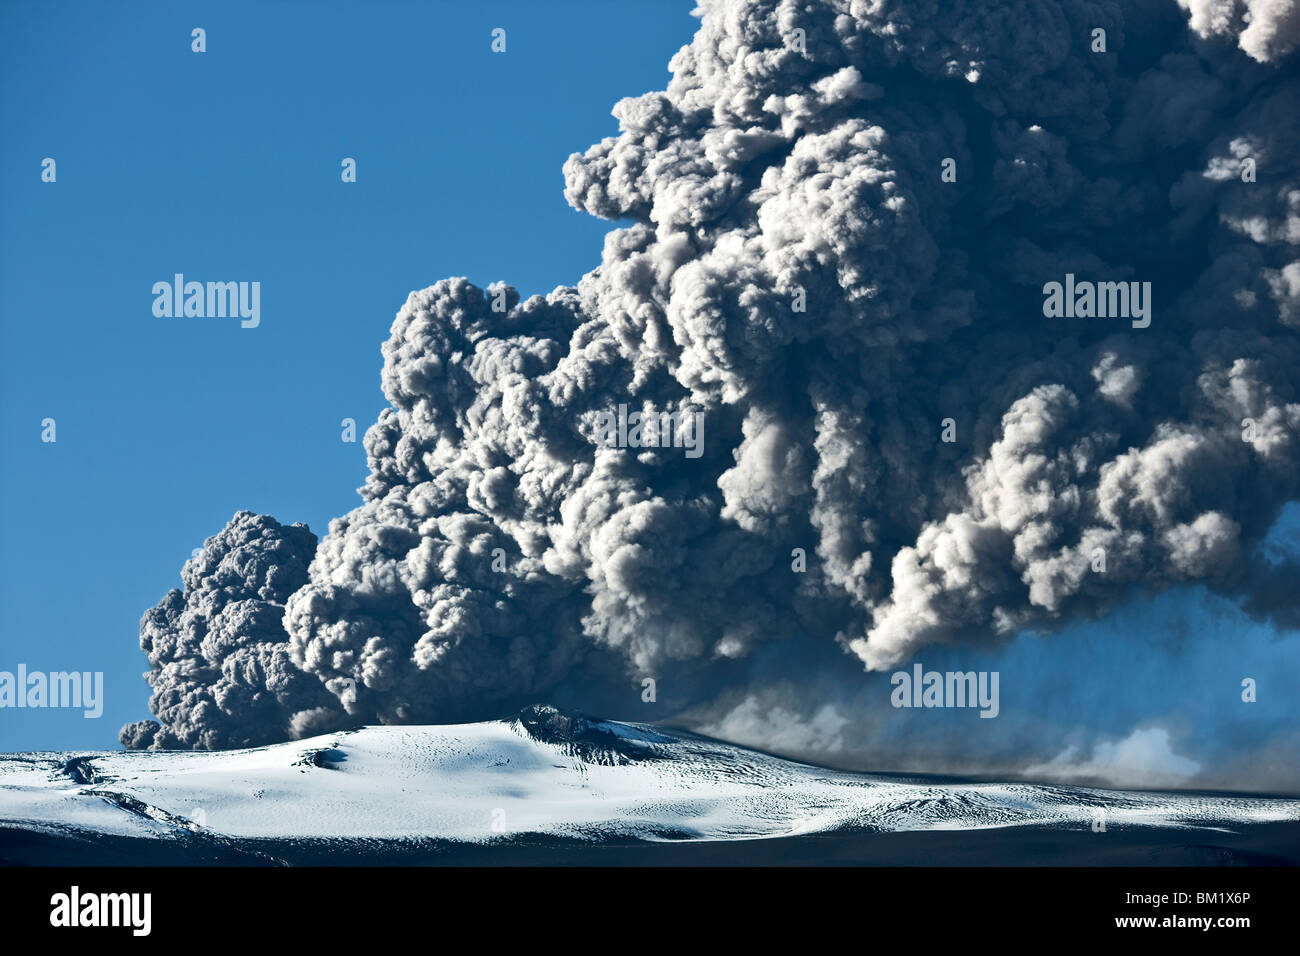 Ash cloud rising from the Eyjafjallajokull volcano in Iceland - Stock Image